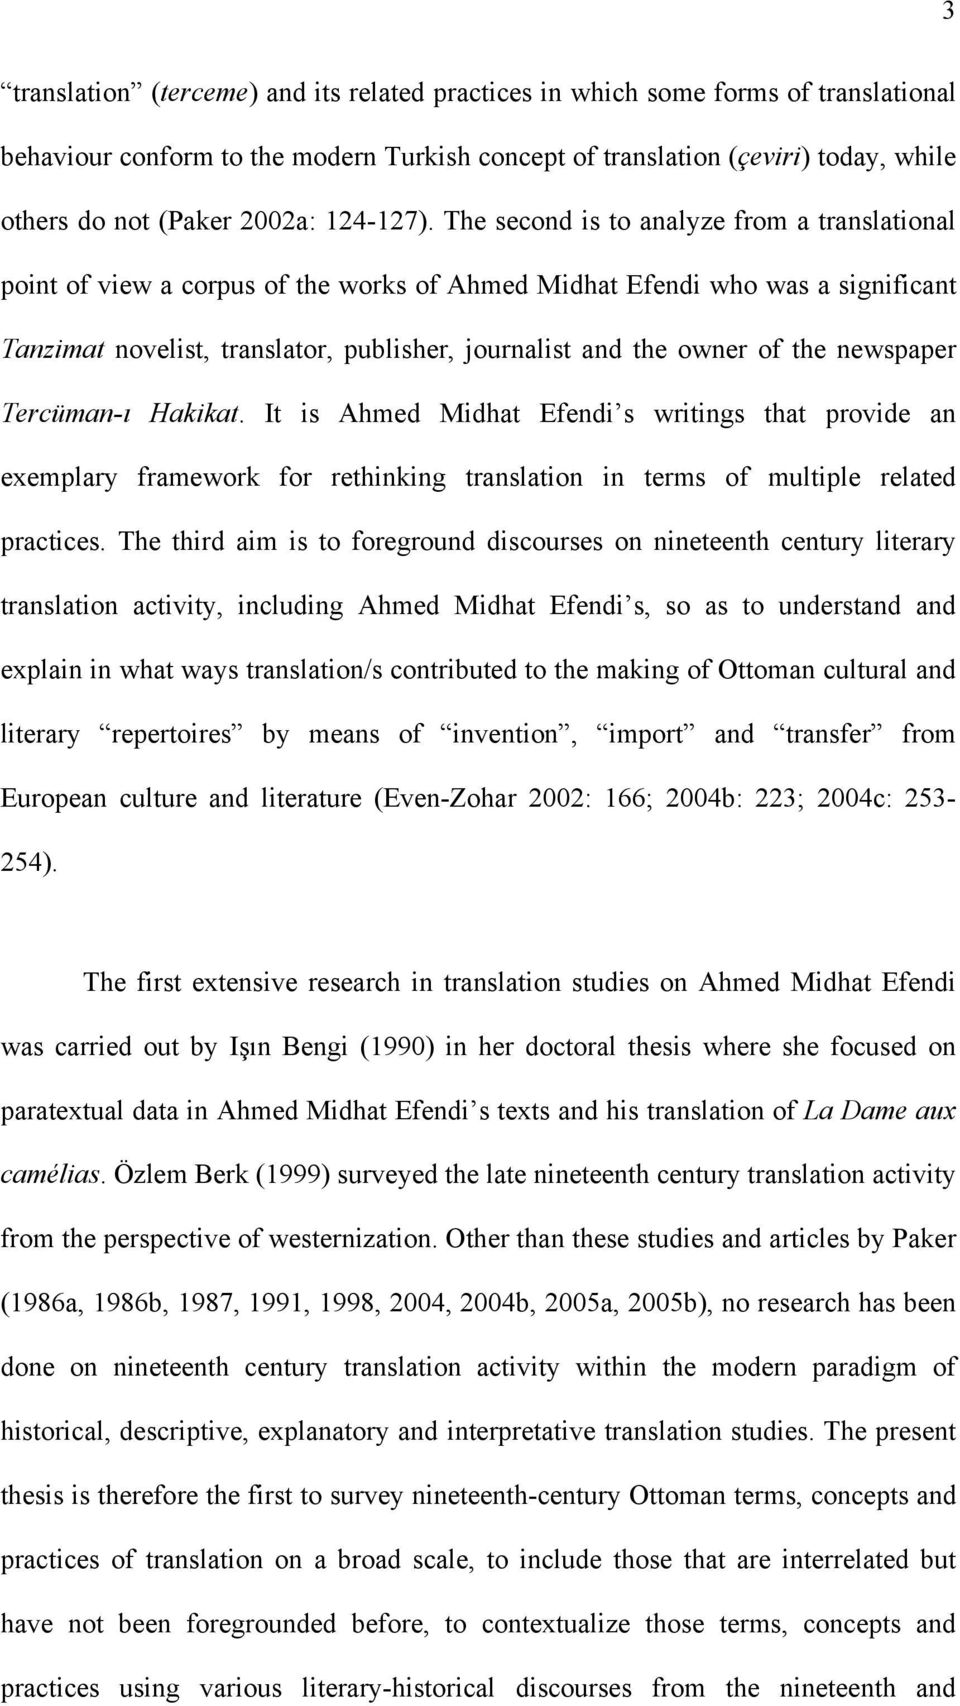 The second is to analyze from a translational point of view a corpus of the works of Ahmed Midhat Efendi who was a significant Tanzimat novelist, translator, publisher, journalist and the owner of